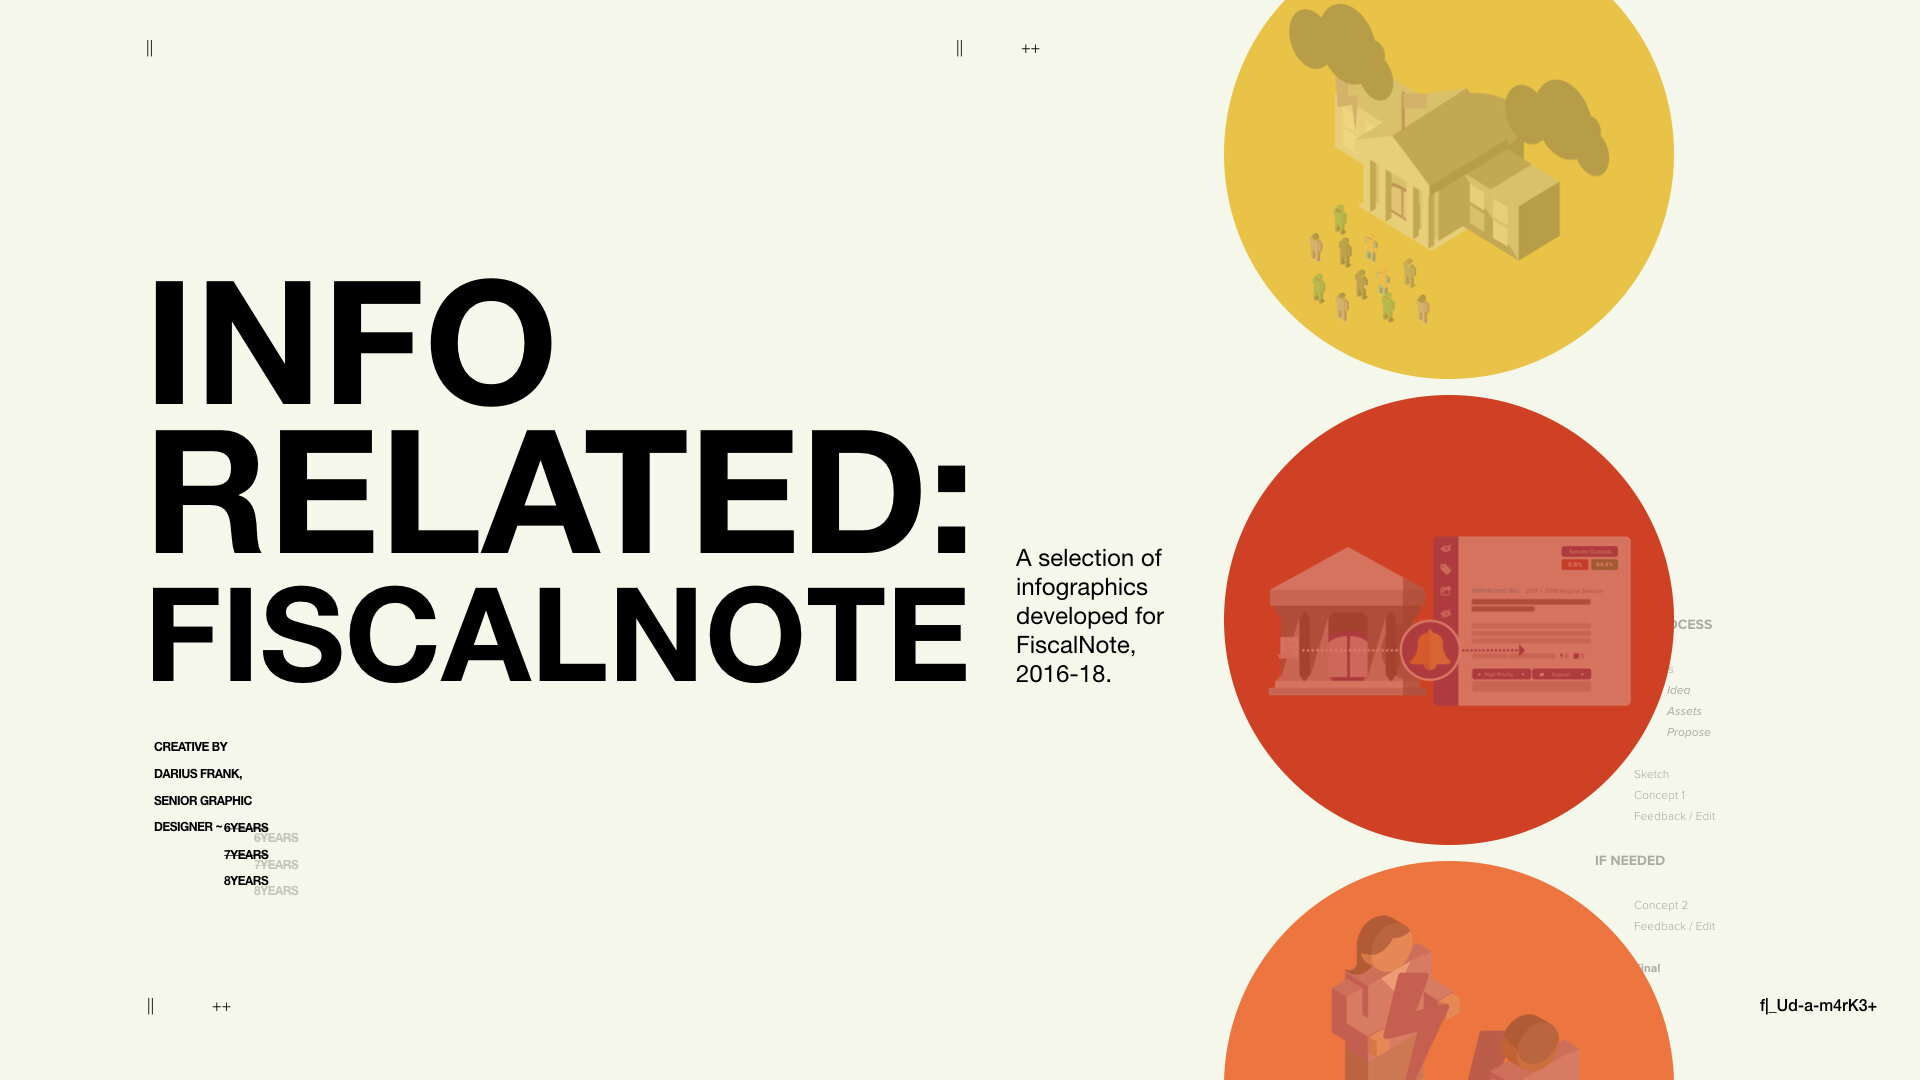 Info Related: FiscalNote - A selection of infographics developed for FiscalNote, 2016-18.